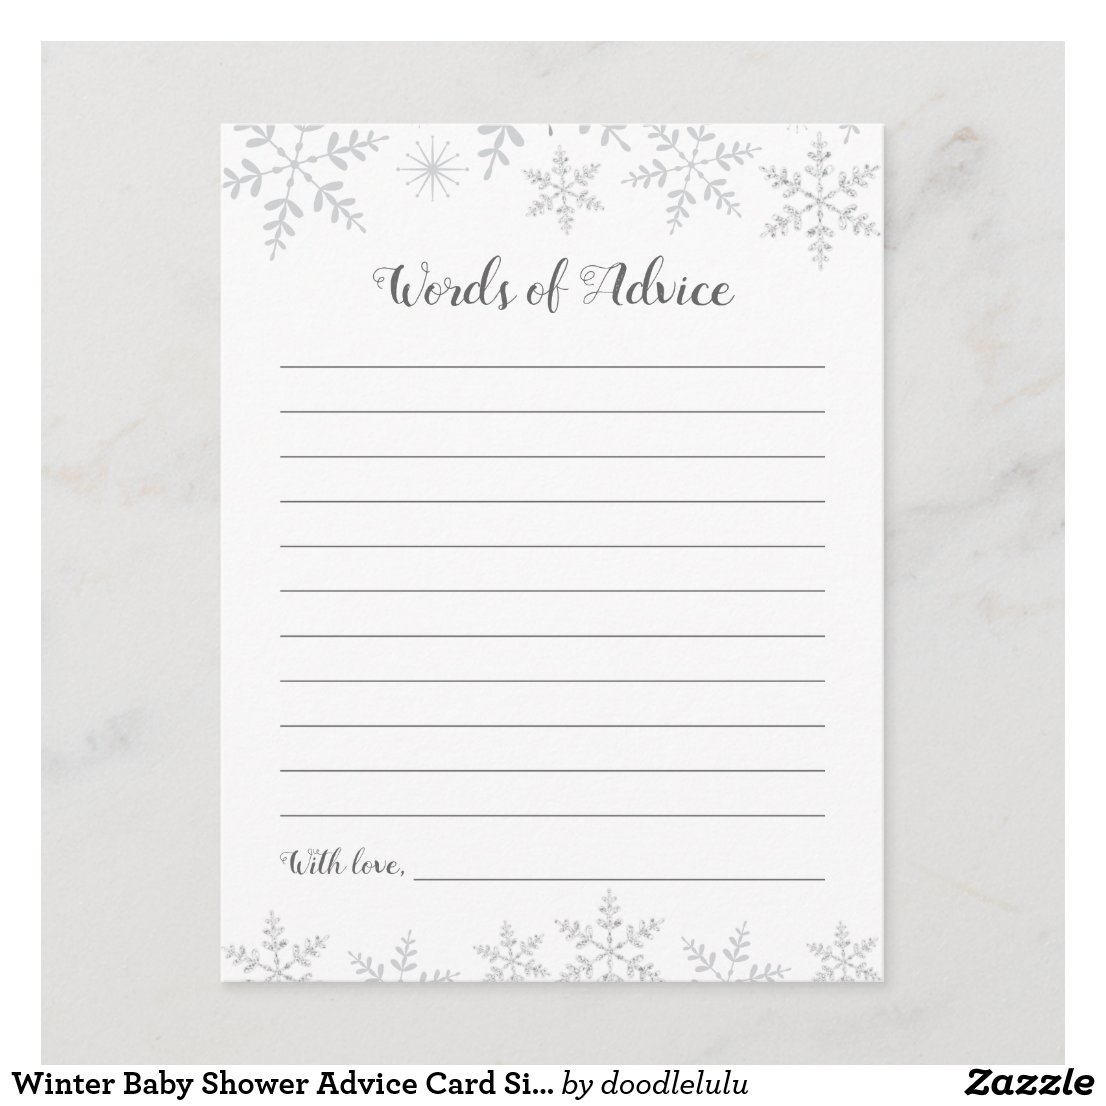 Winter Baby Shower Advice Card Silver Snowflakes